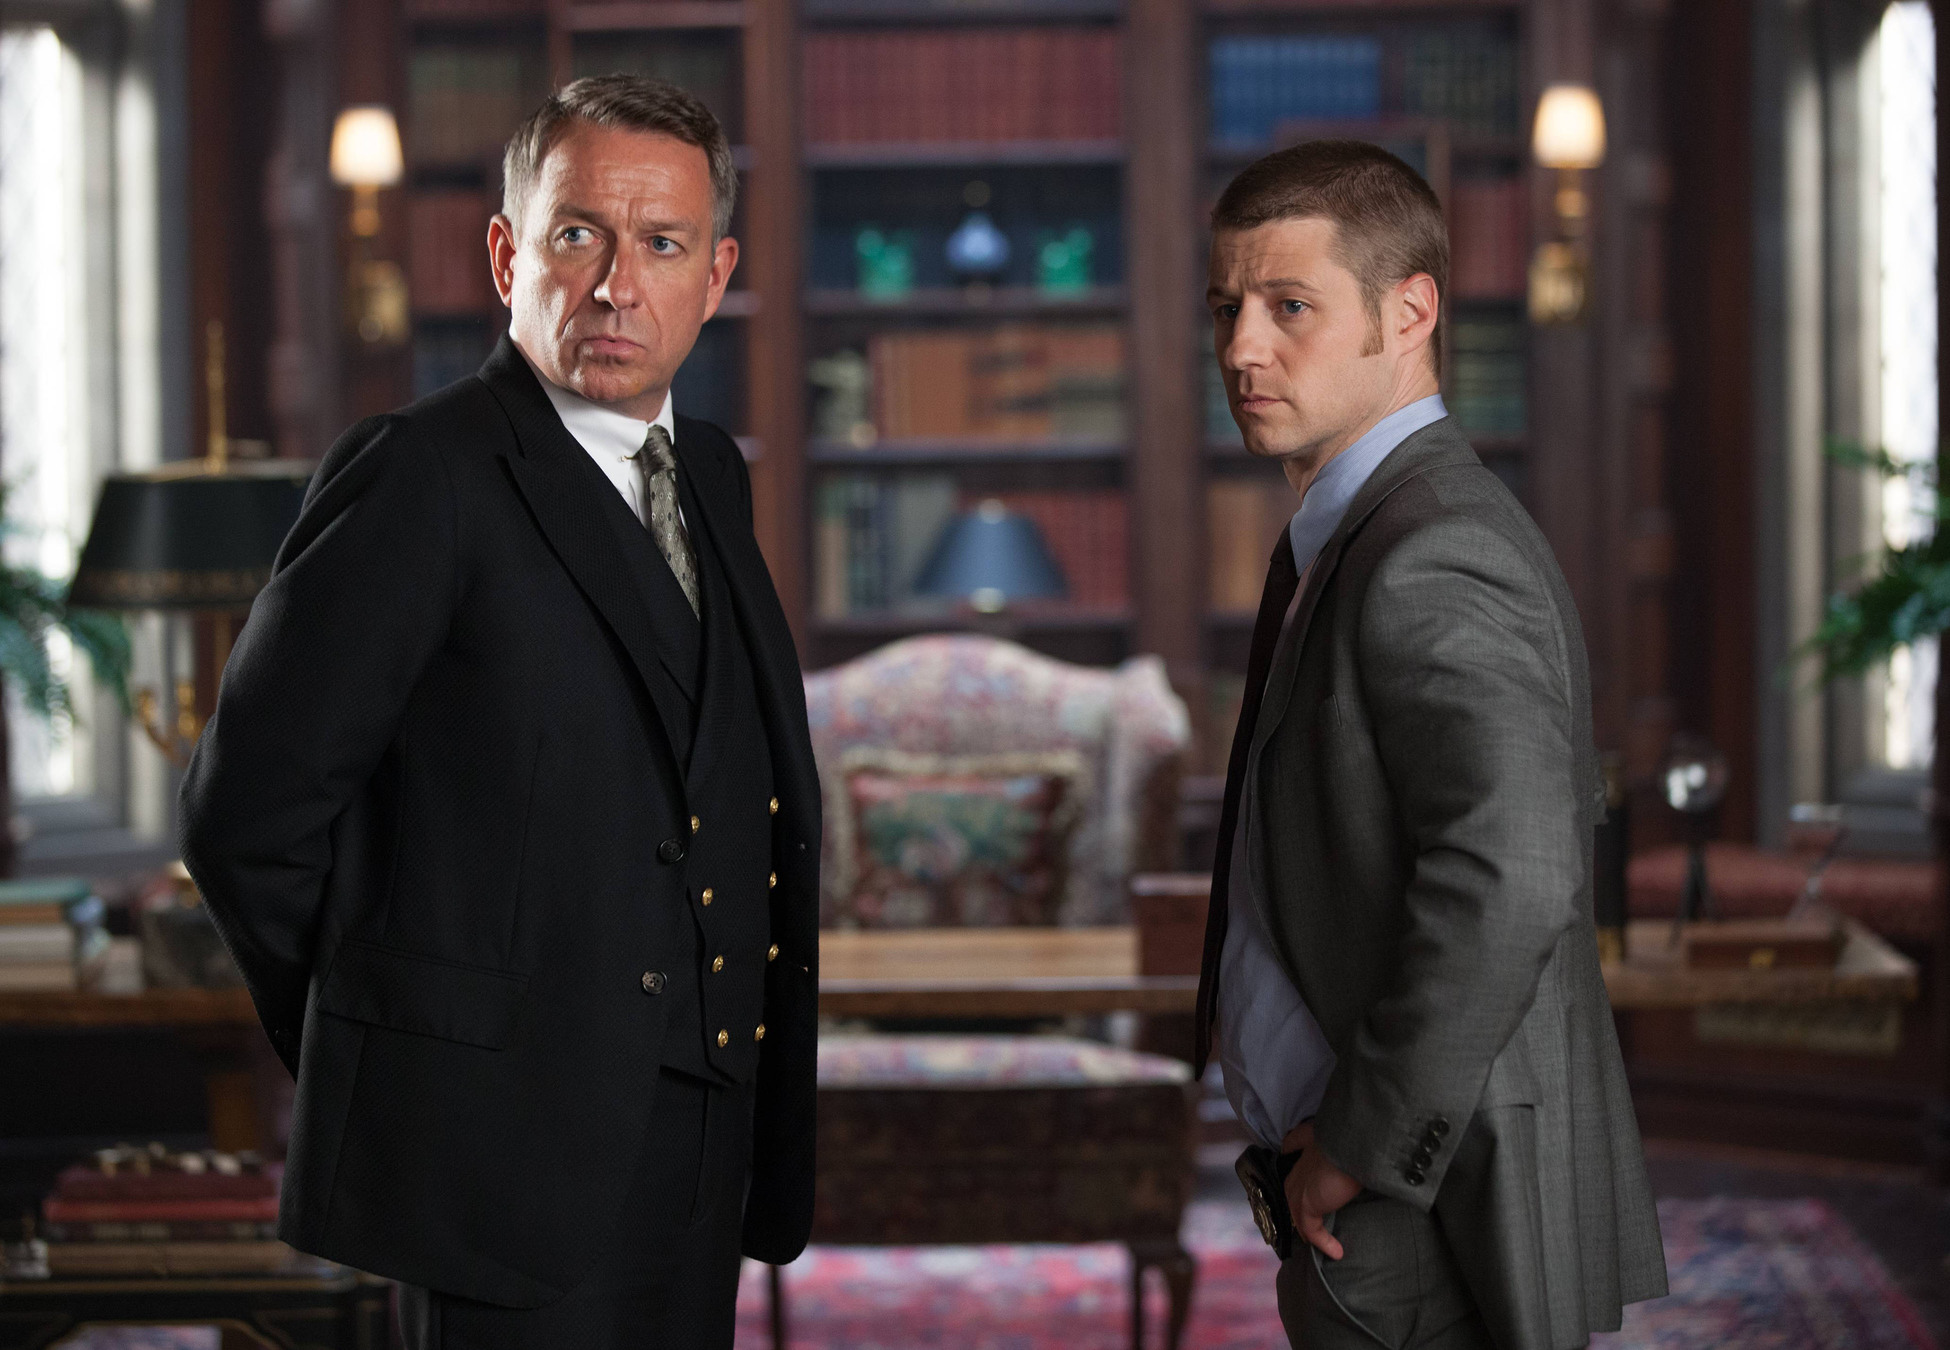 """GOTHAM: Alfred (Sean Pertwee, L) discusses Bruce's well-being with Detective Gordon (Ben McKenzie, R) in the """"Selina Kyle"""" episode of GOTHAM airing Monday, Sept. 29 (8:00-9:00 PM ET/PT) on FOX. ©2014 Fox Broadcasting Co. Cr: Jessica Miglio/FOX"""